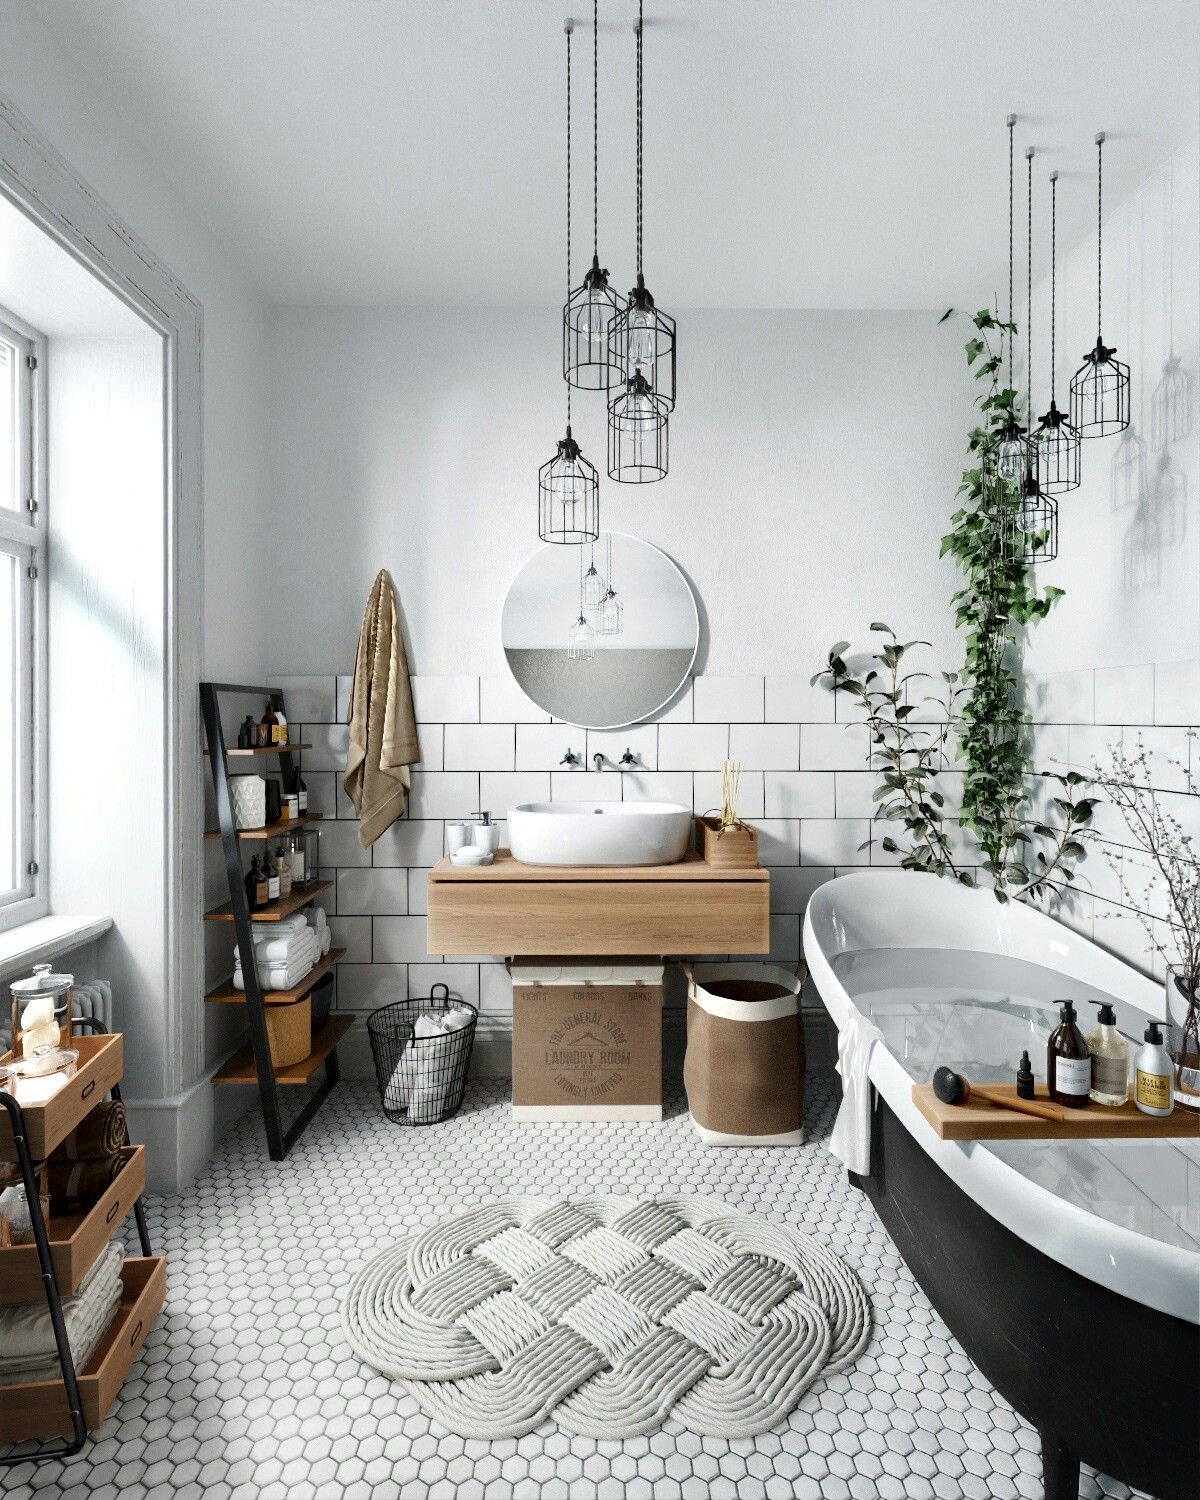 Scandinavian Style Bathroom Ikea Black Bathroom Scandinavian Nordic White Scandinavian Bathroom Bathroom Layout Scandinavian Style Interior